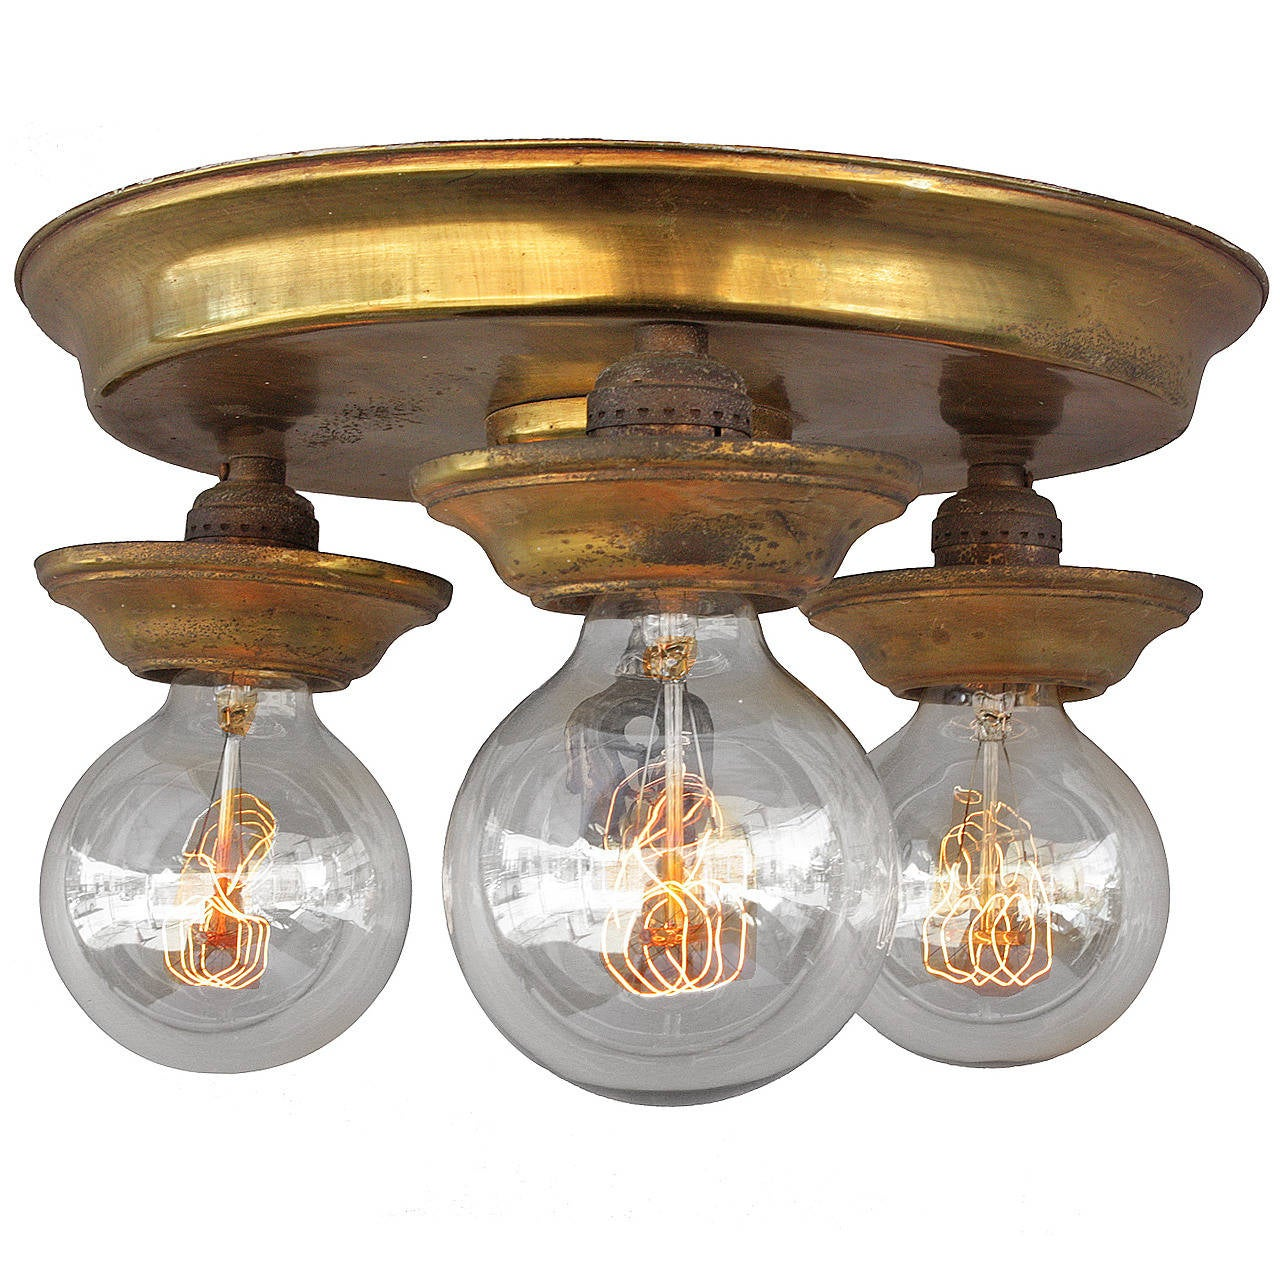 this 3 light 1920 39 s flush mount ceiling light fixture is no longer